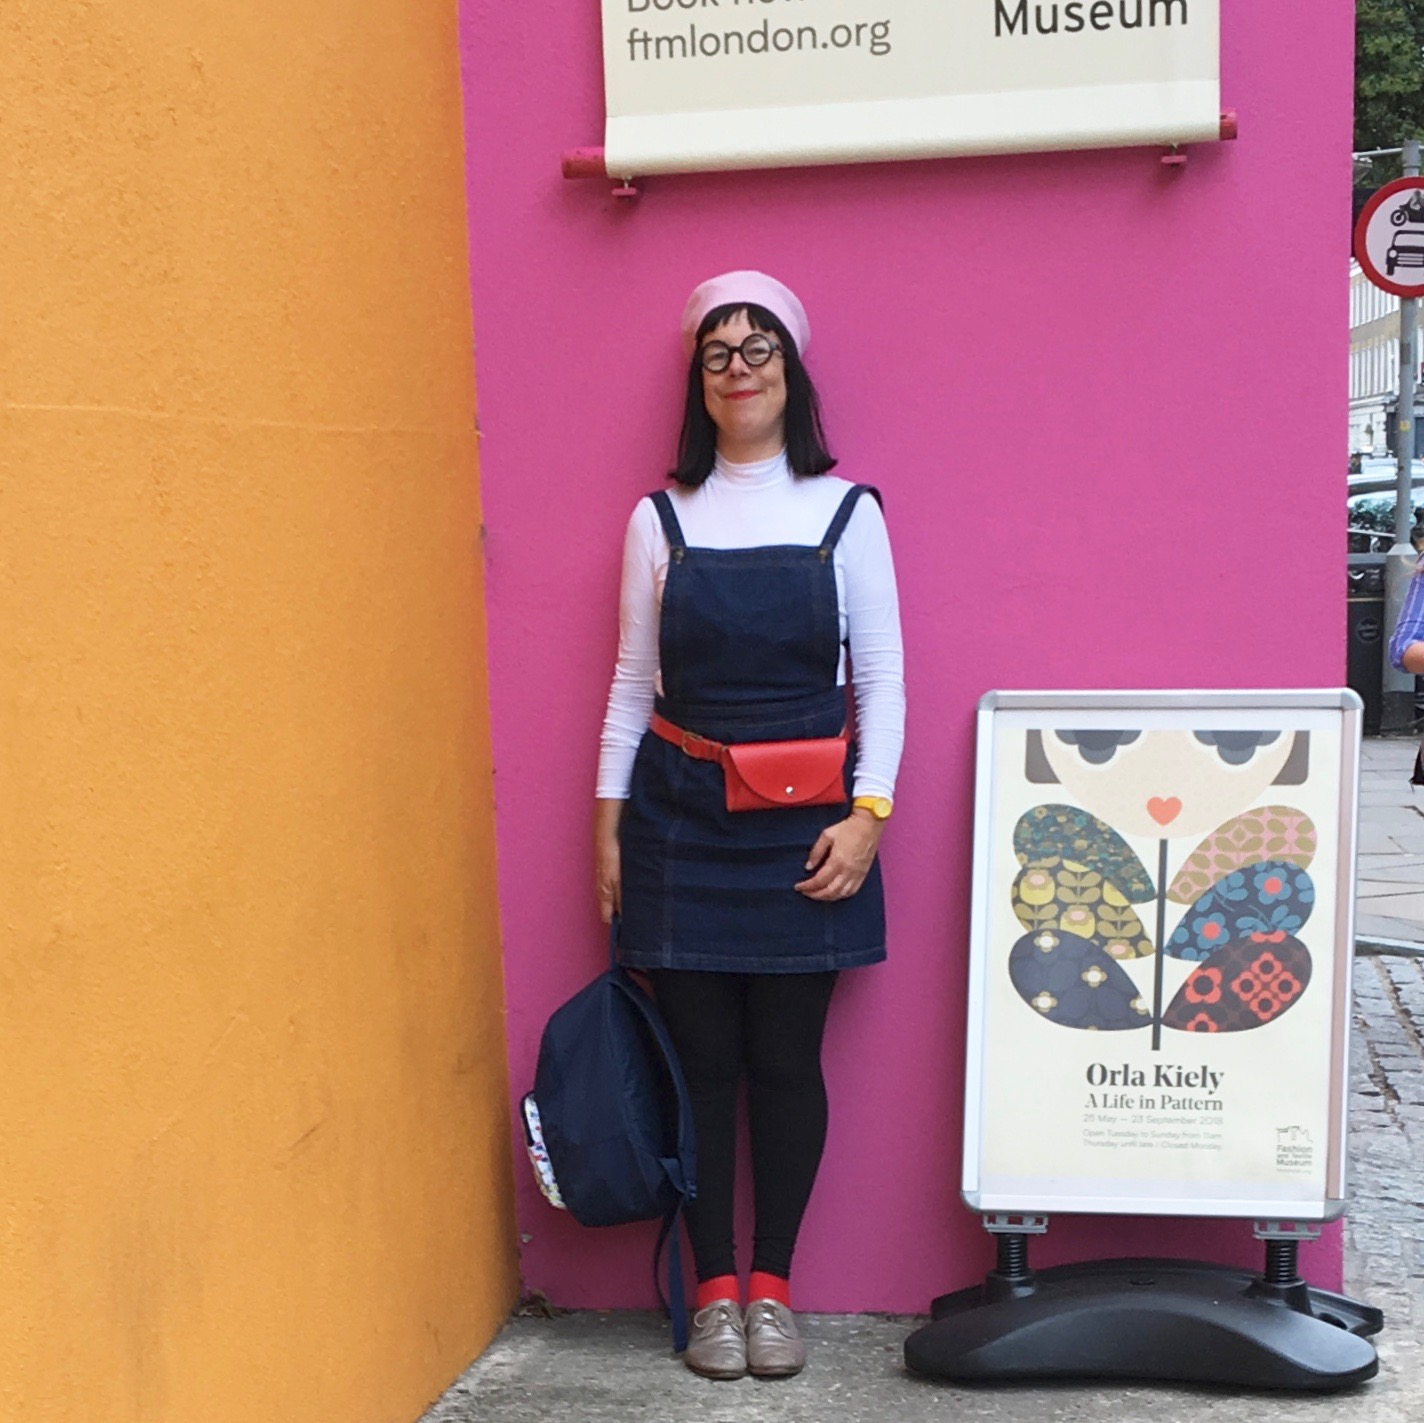 Outside the Museum of Fashion and Textiles - (photo taken by my mum! )